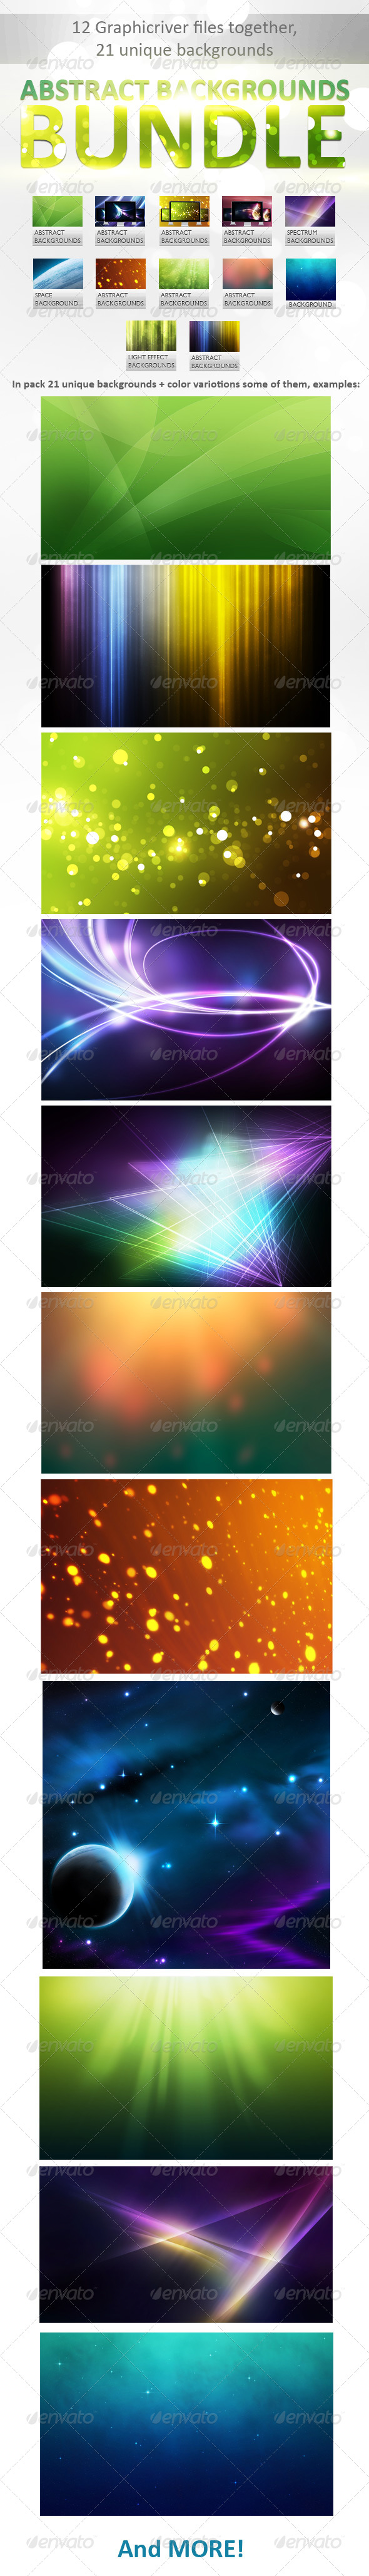 Abstract Backgrounds Bundle - Backgrounds Graphics